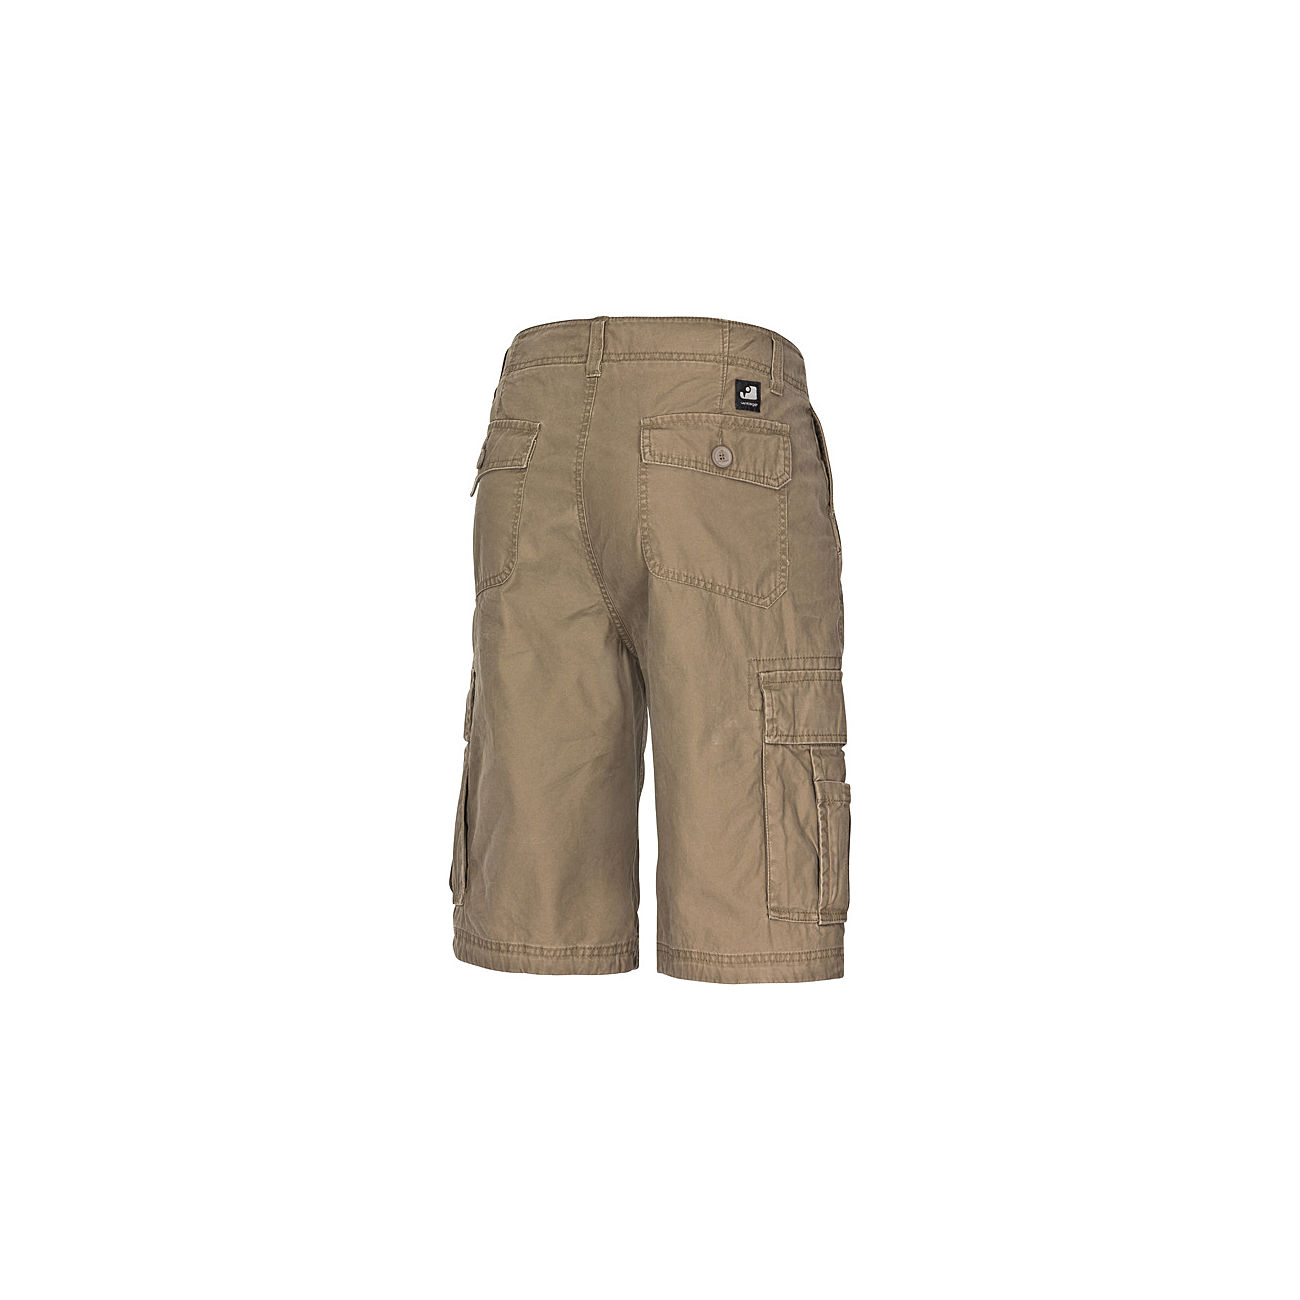 Vintage Industries Batten Shorts dark khaki 1